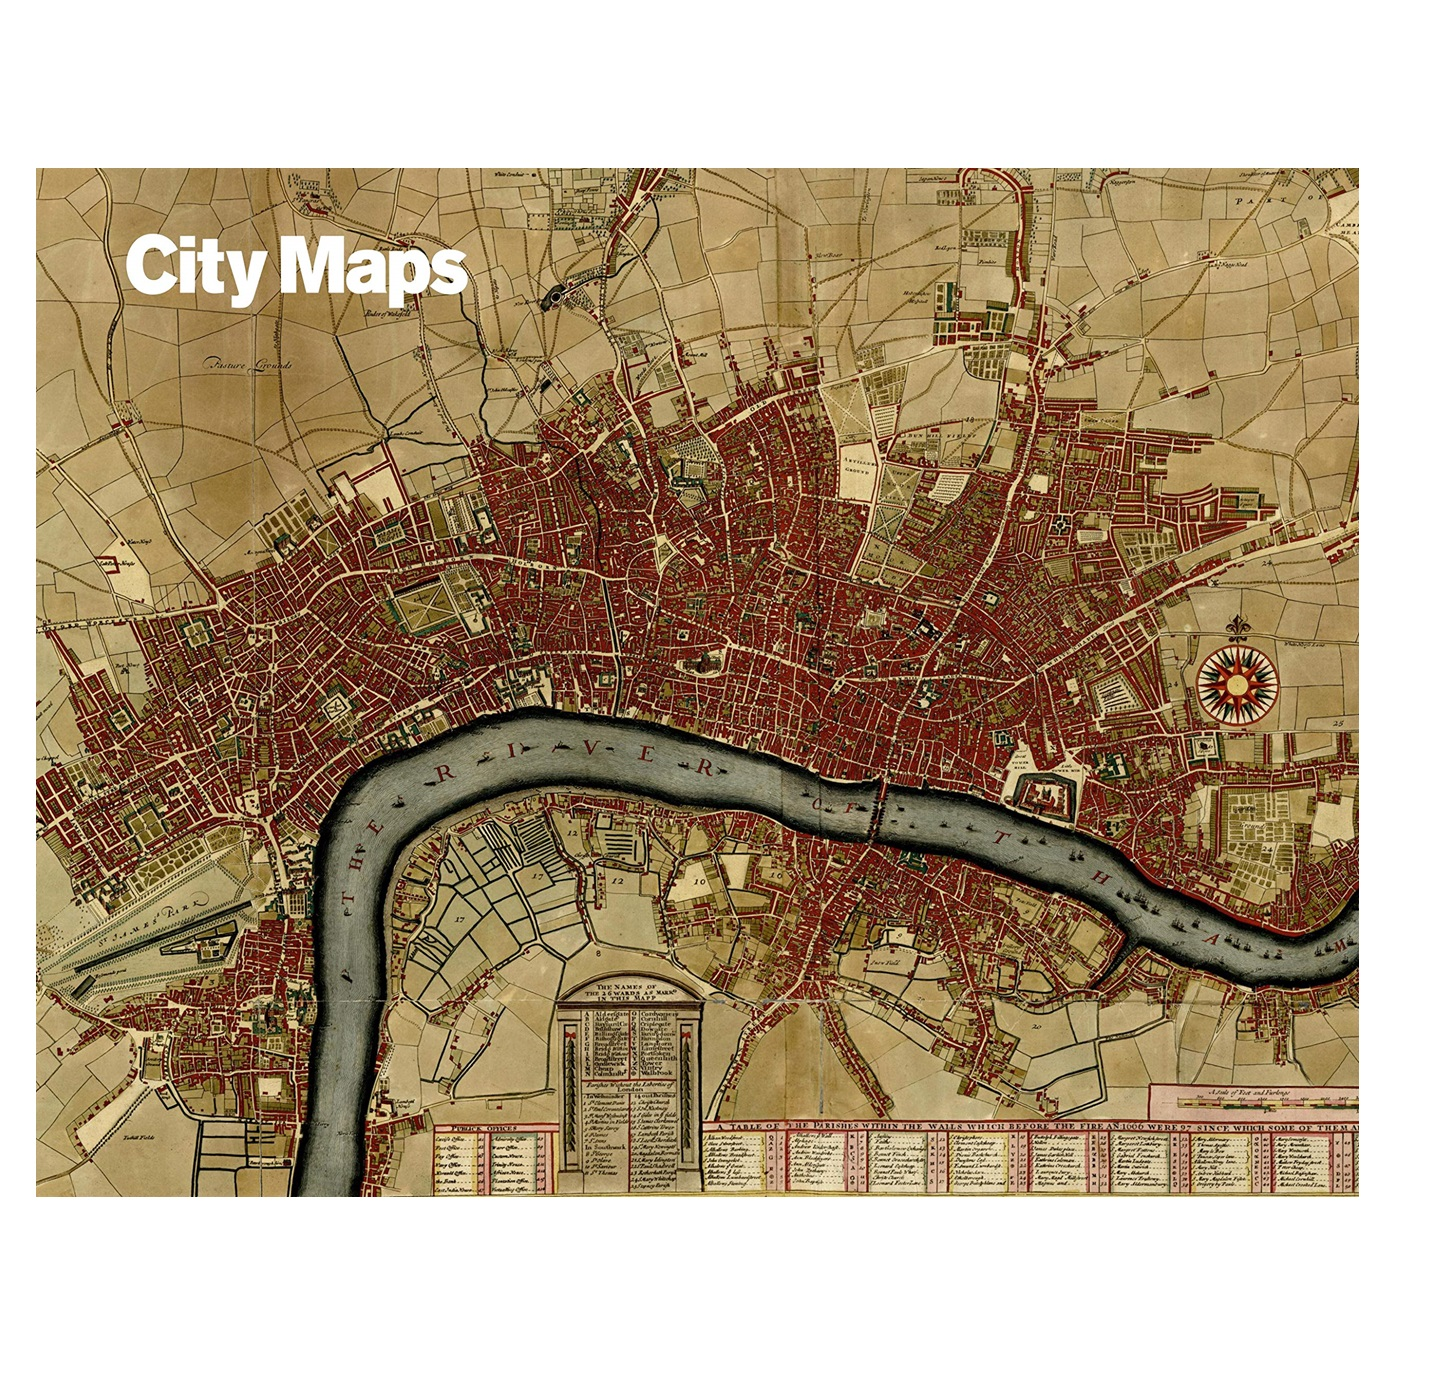 City Maps 5 - Poster